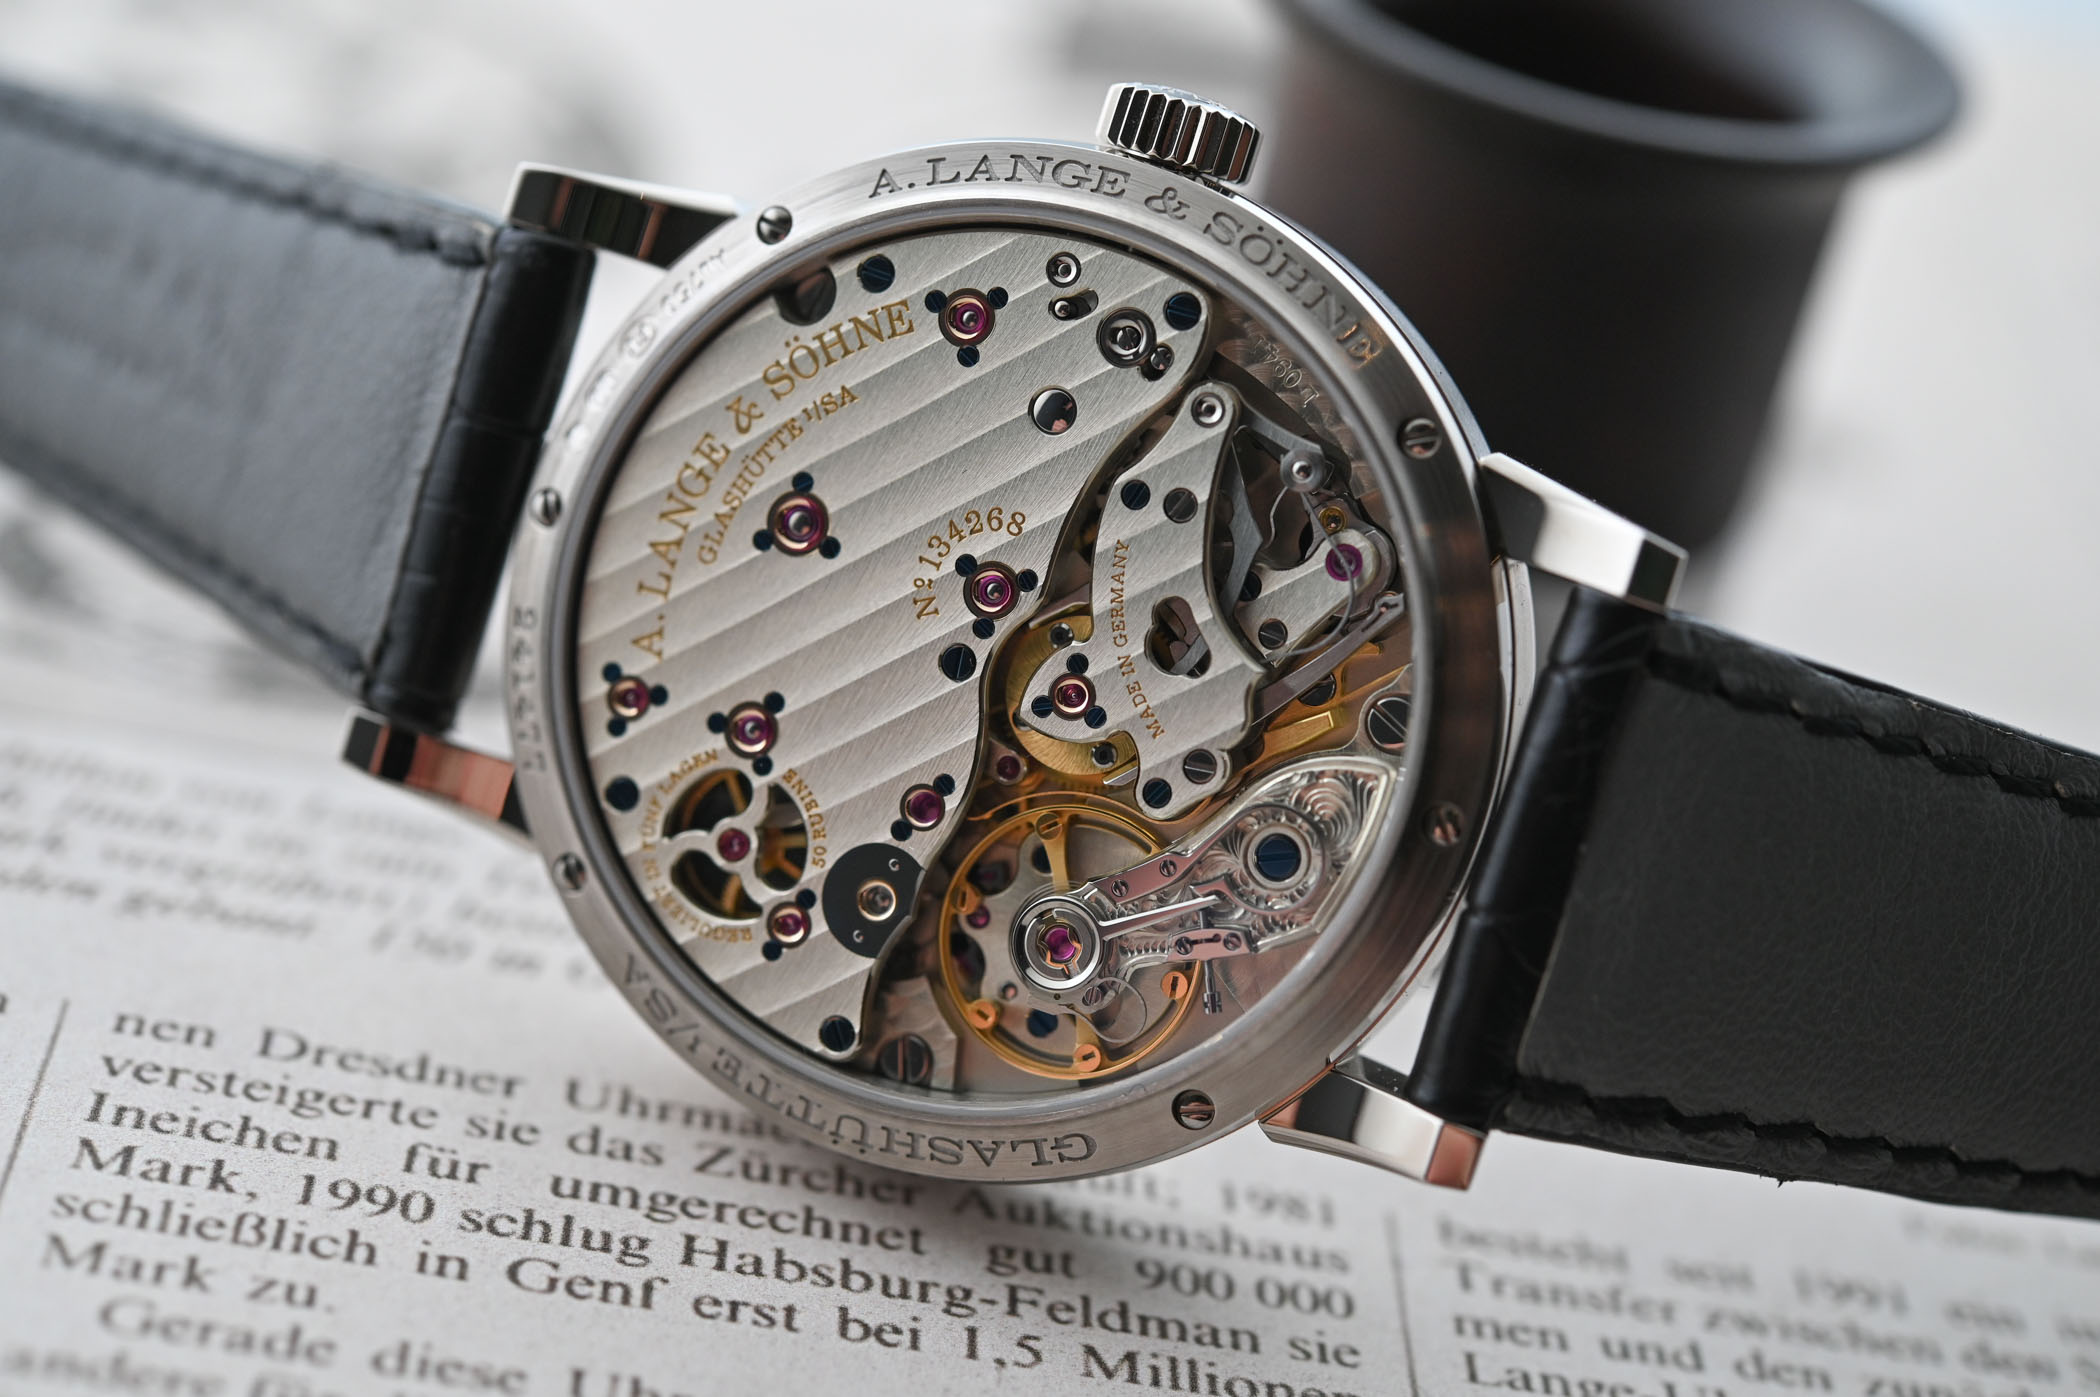 A Lange Sohne Richard Lange Jumping Seconds White Gold and Black Dial - SIHH 2019 - review - 4